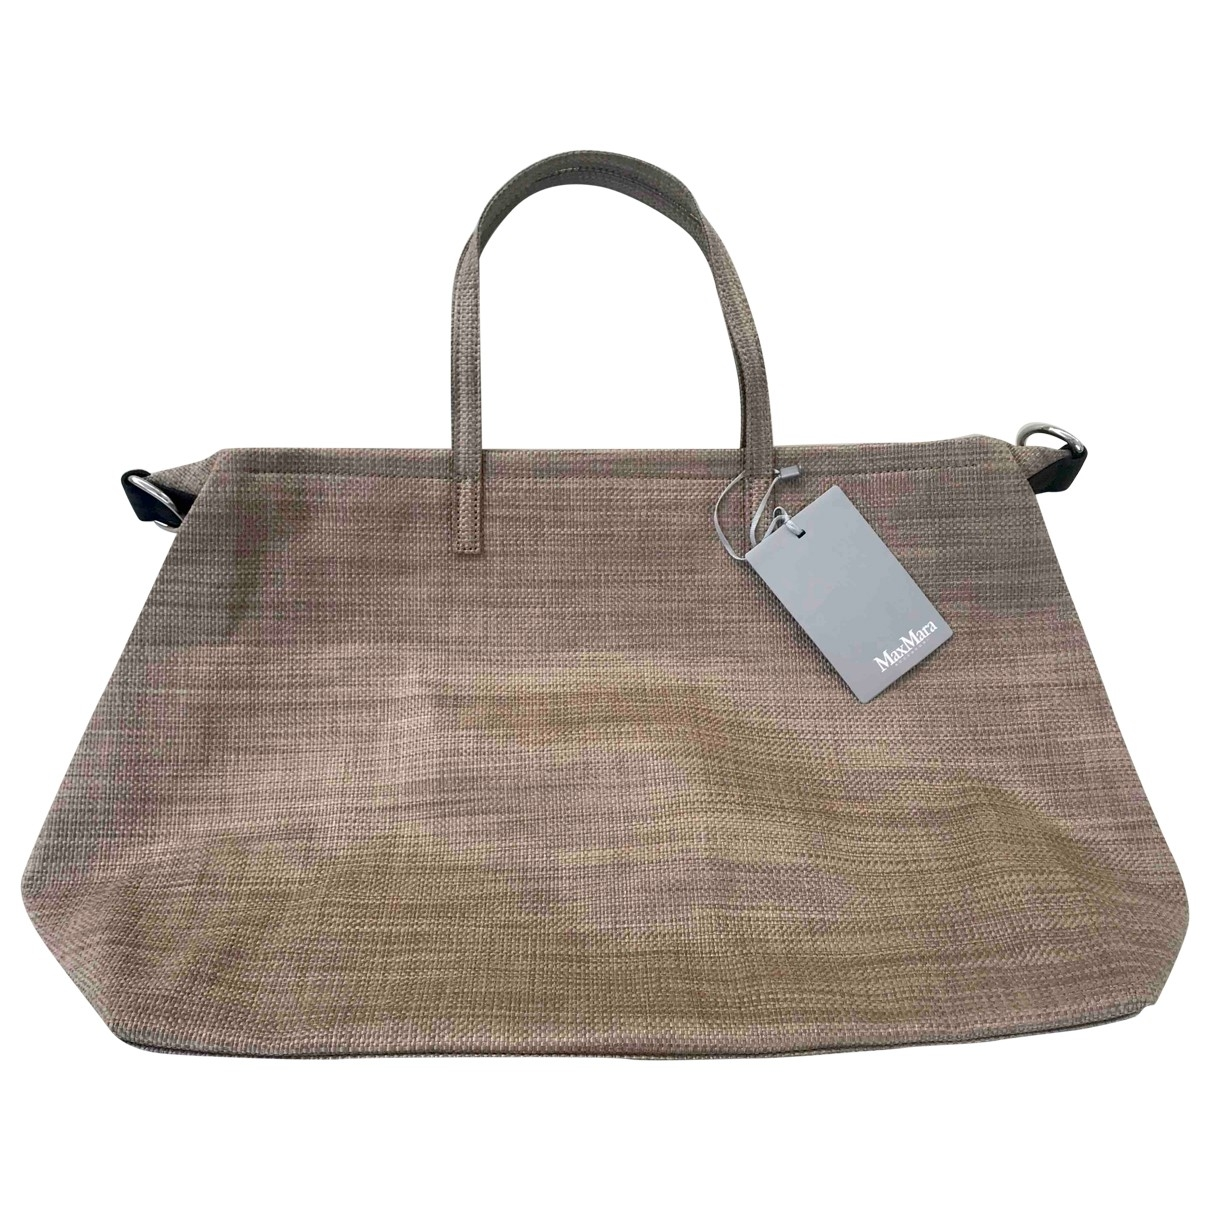 Max Mara \N Beige handbag for Women \N